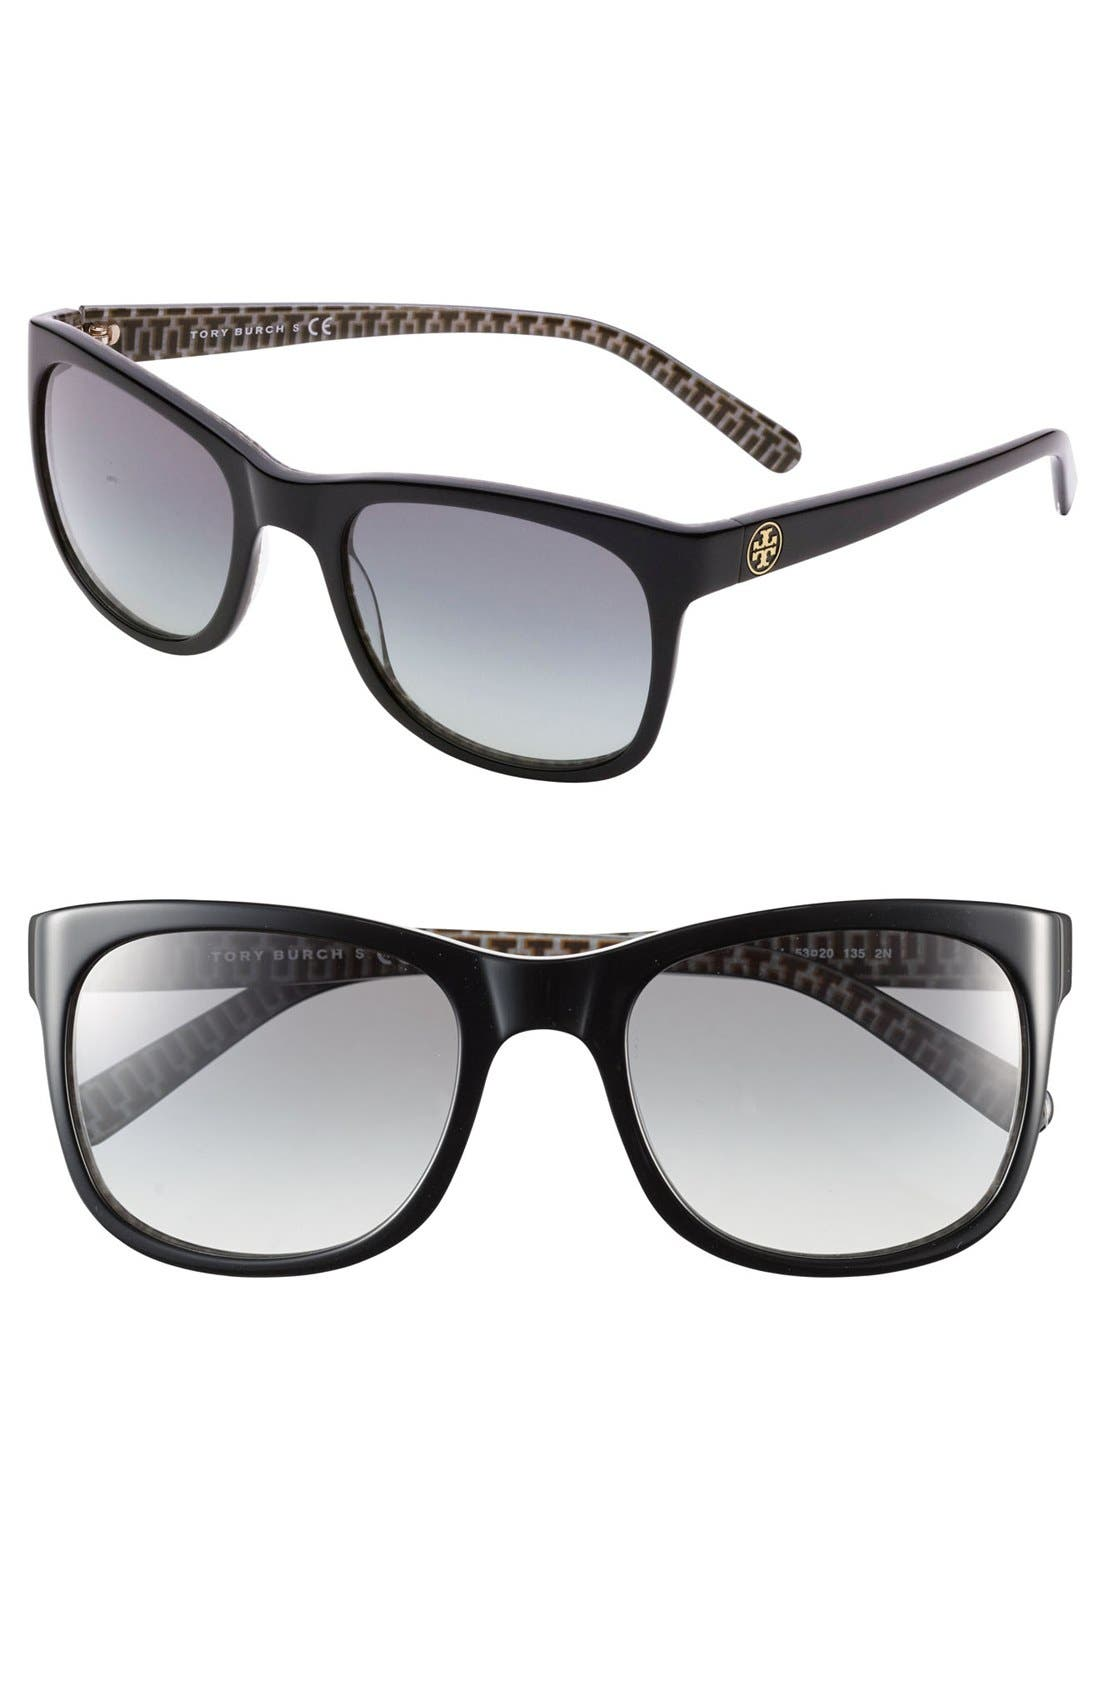 Alternate Image 1 Selected - Tory Burch 53mm Glam Logo Sunglasses